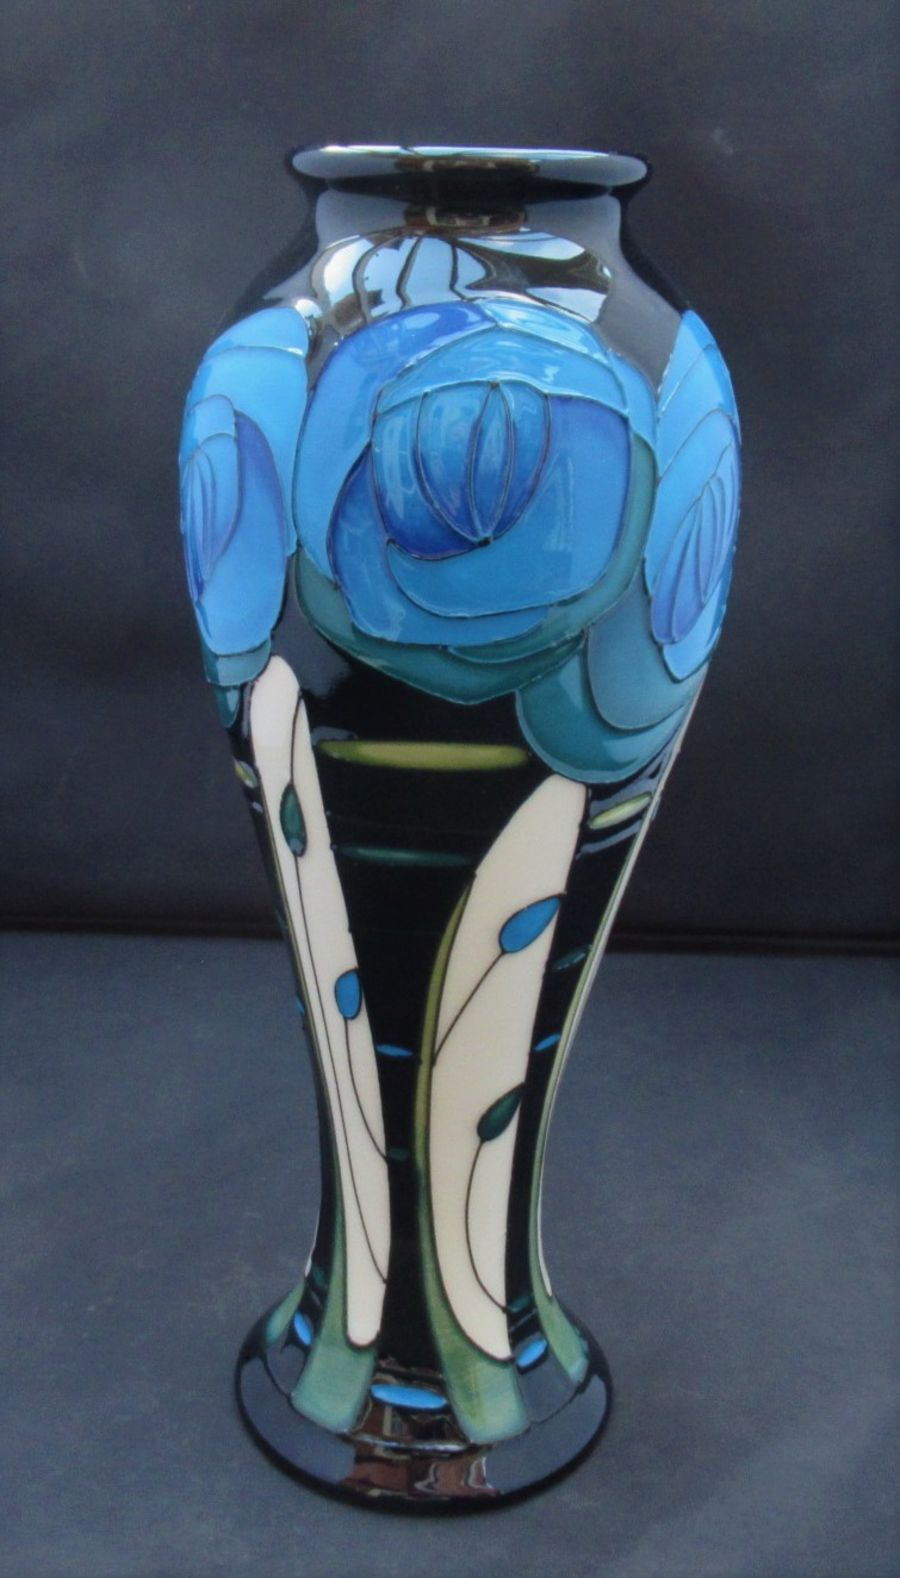 Moorcroft, Rennie Rose, Blue Colourway by Rachel Bishop, 2017